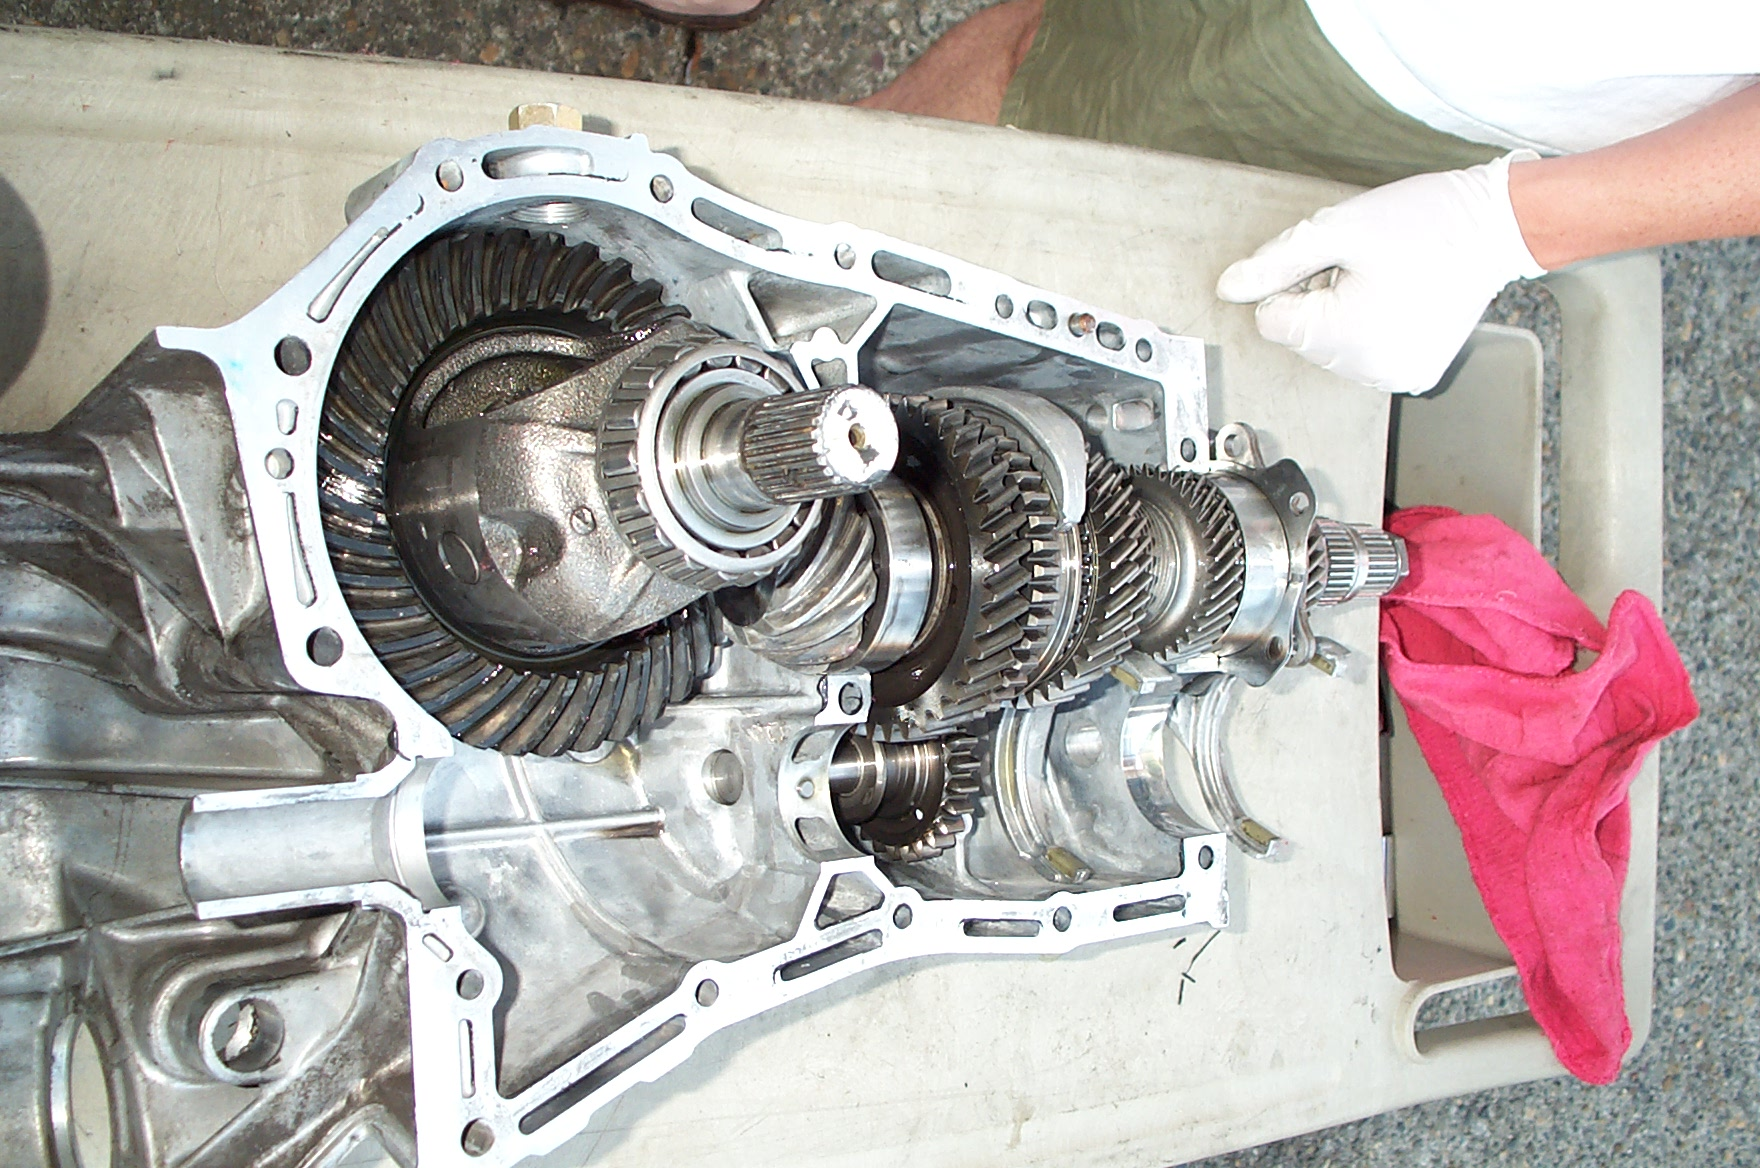 How Much To Rebuild A Transmission >> Factory Five Forums - THE Transmission Thread 2.0, Now with Pictures